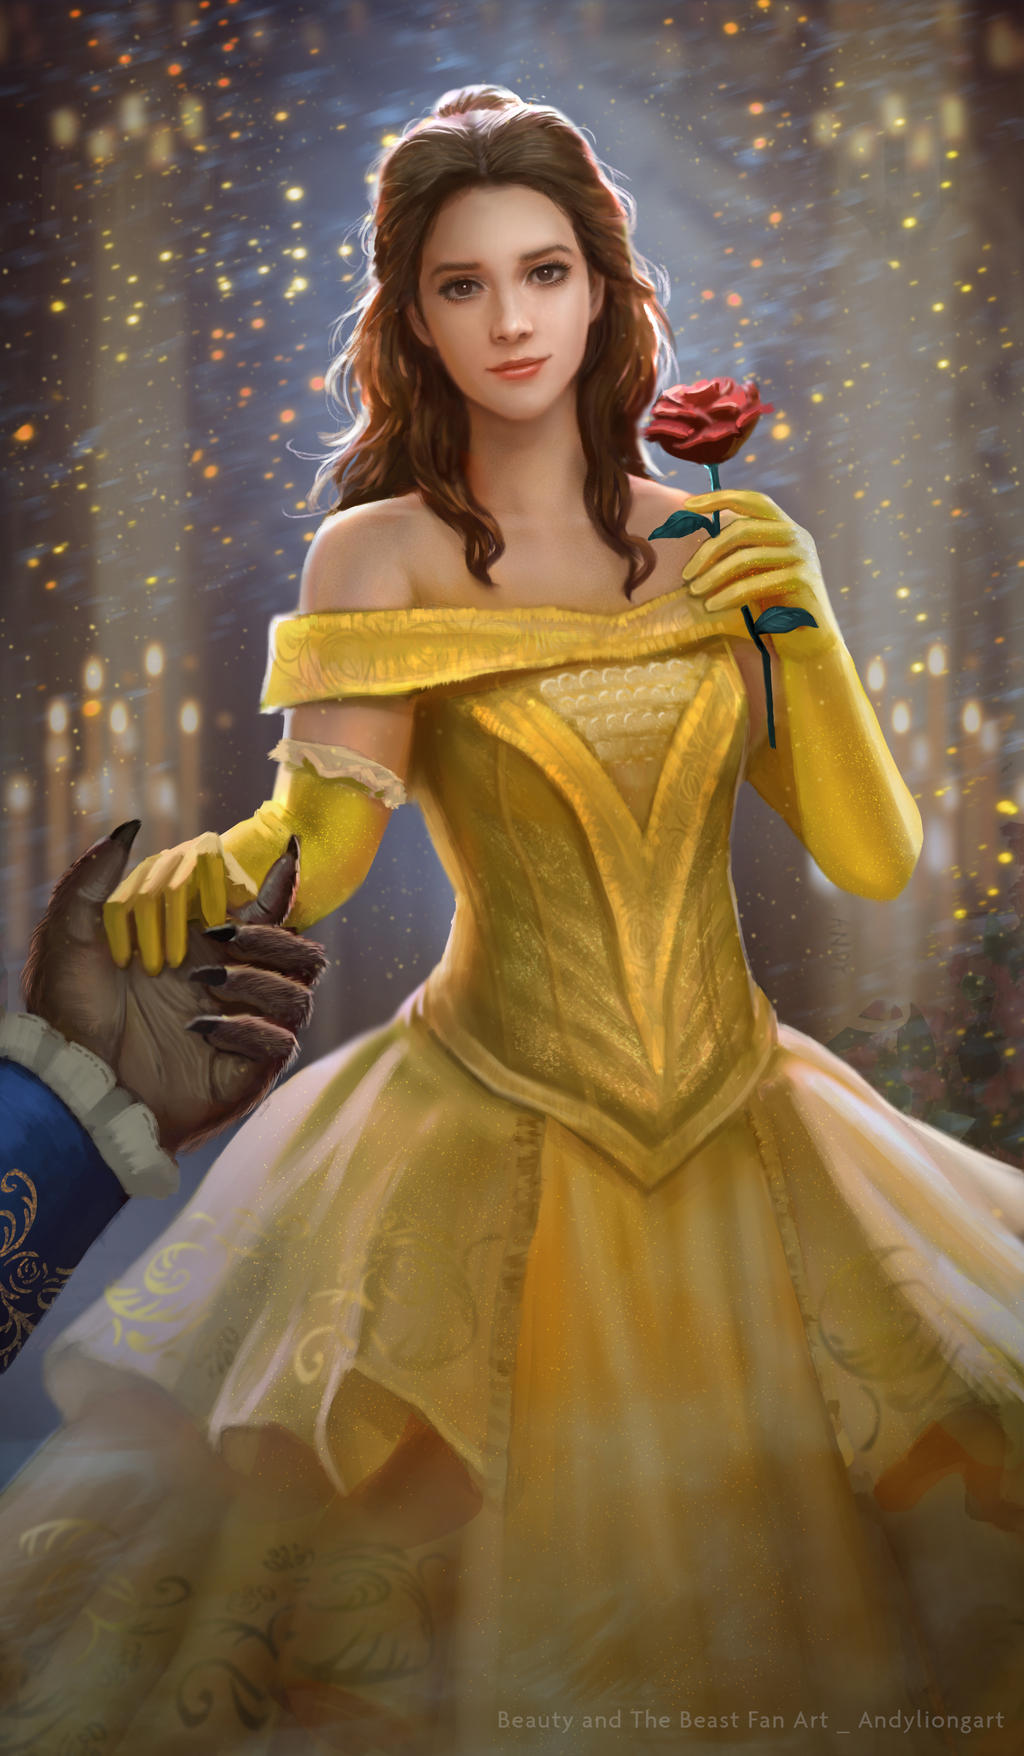 Belle Fan art_Beauty and the Beast 2017 by andyliongart on ...